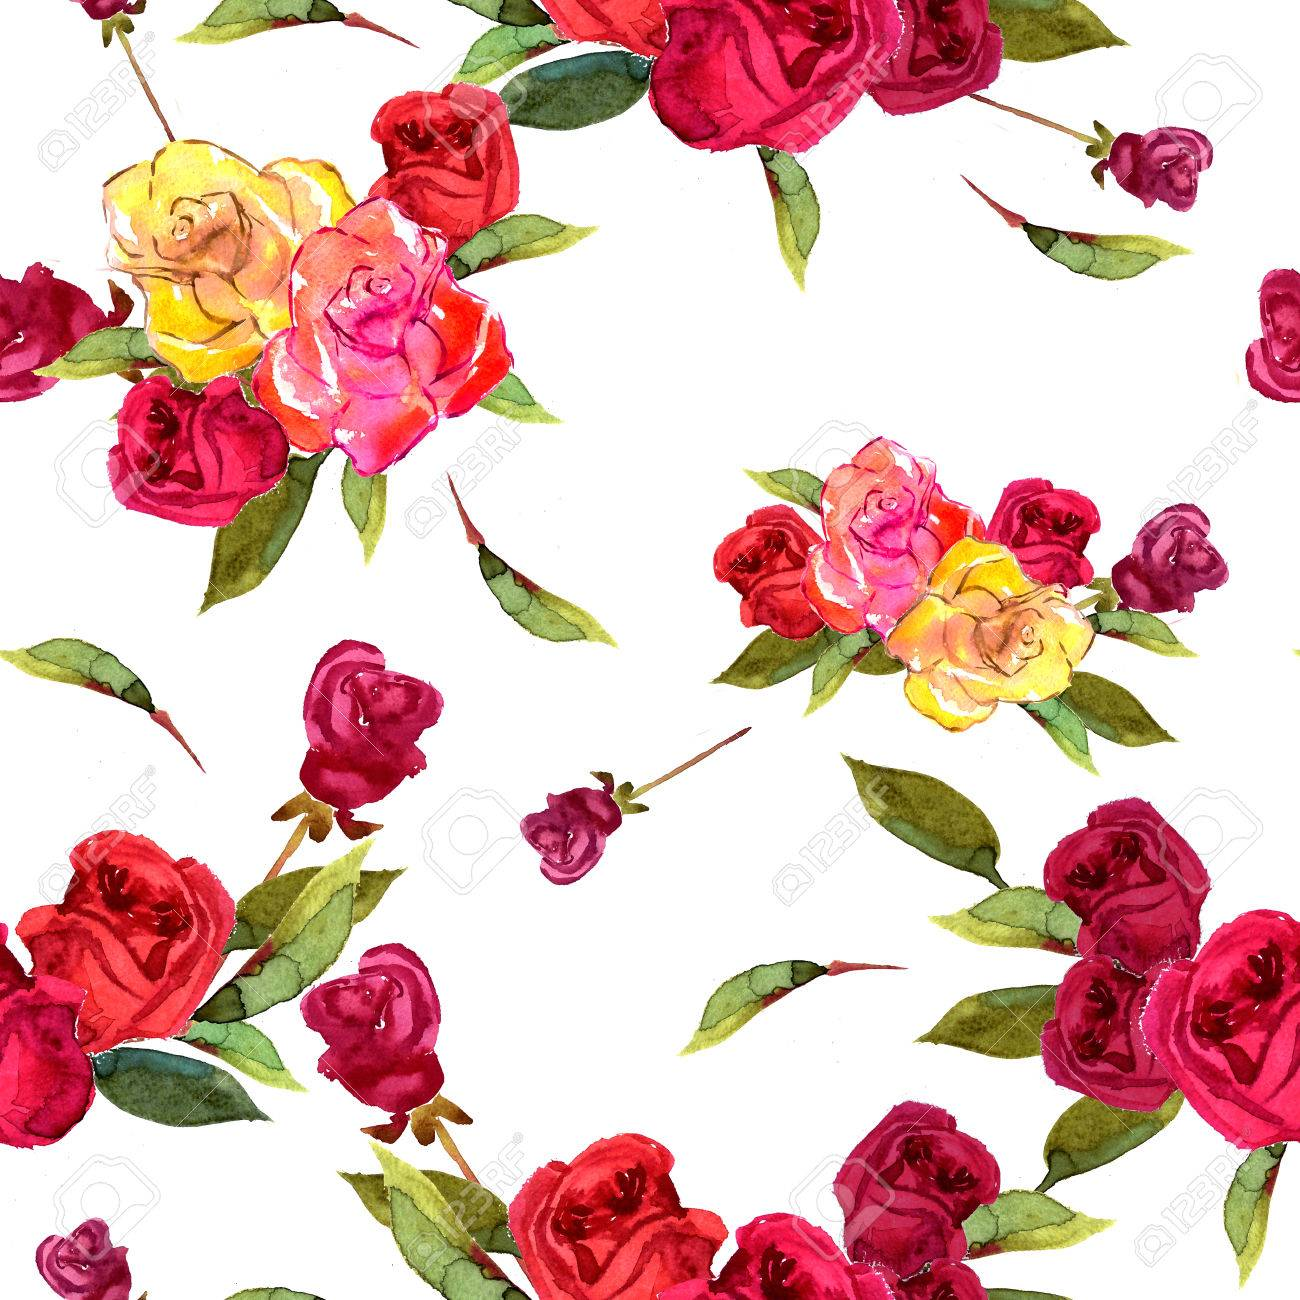 illustration watercolor flowers rose red yellow and green leaves